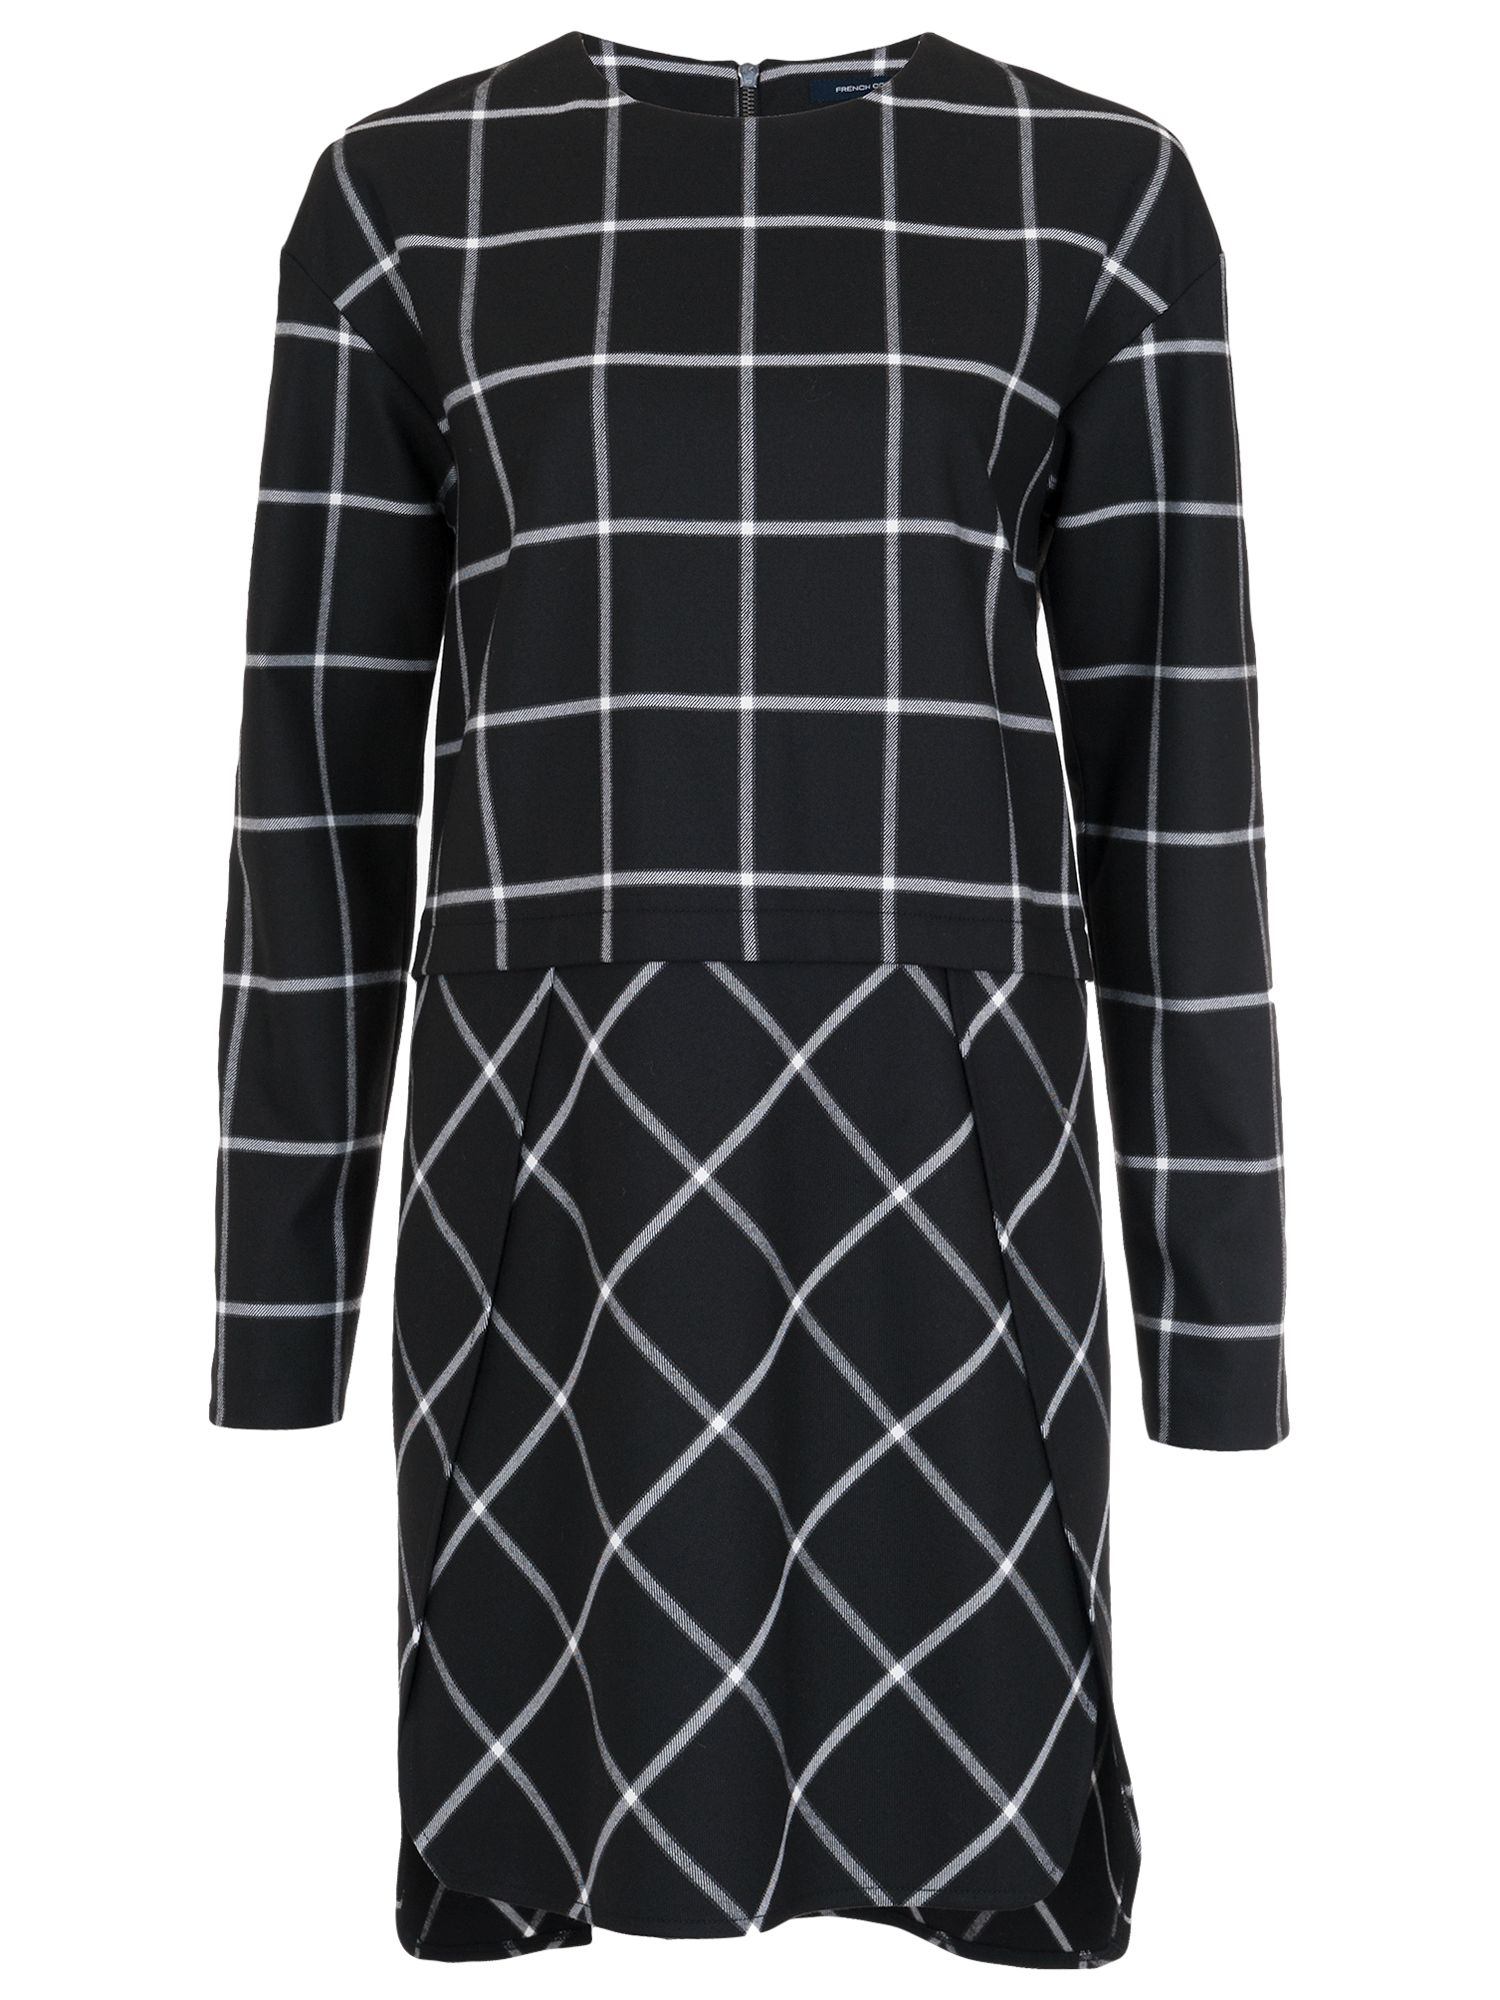 french connection ciao check dress black/white, french, connection, ciao, check, dress, black/white, french connection, 10|12|14|8|6, clearance, womenswear offers, womens dresses offers, women, inactive womenswear, new reductions, womens dresses, special offers, 1717143